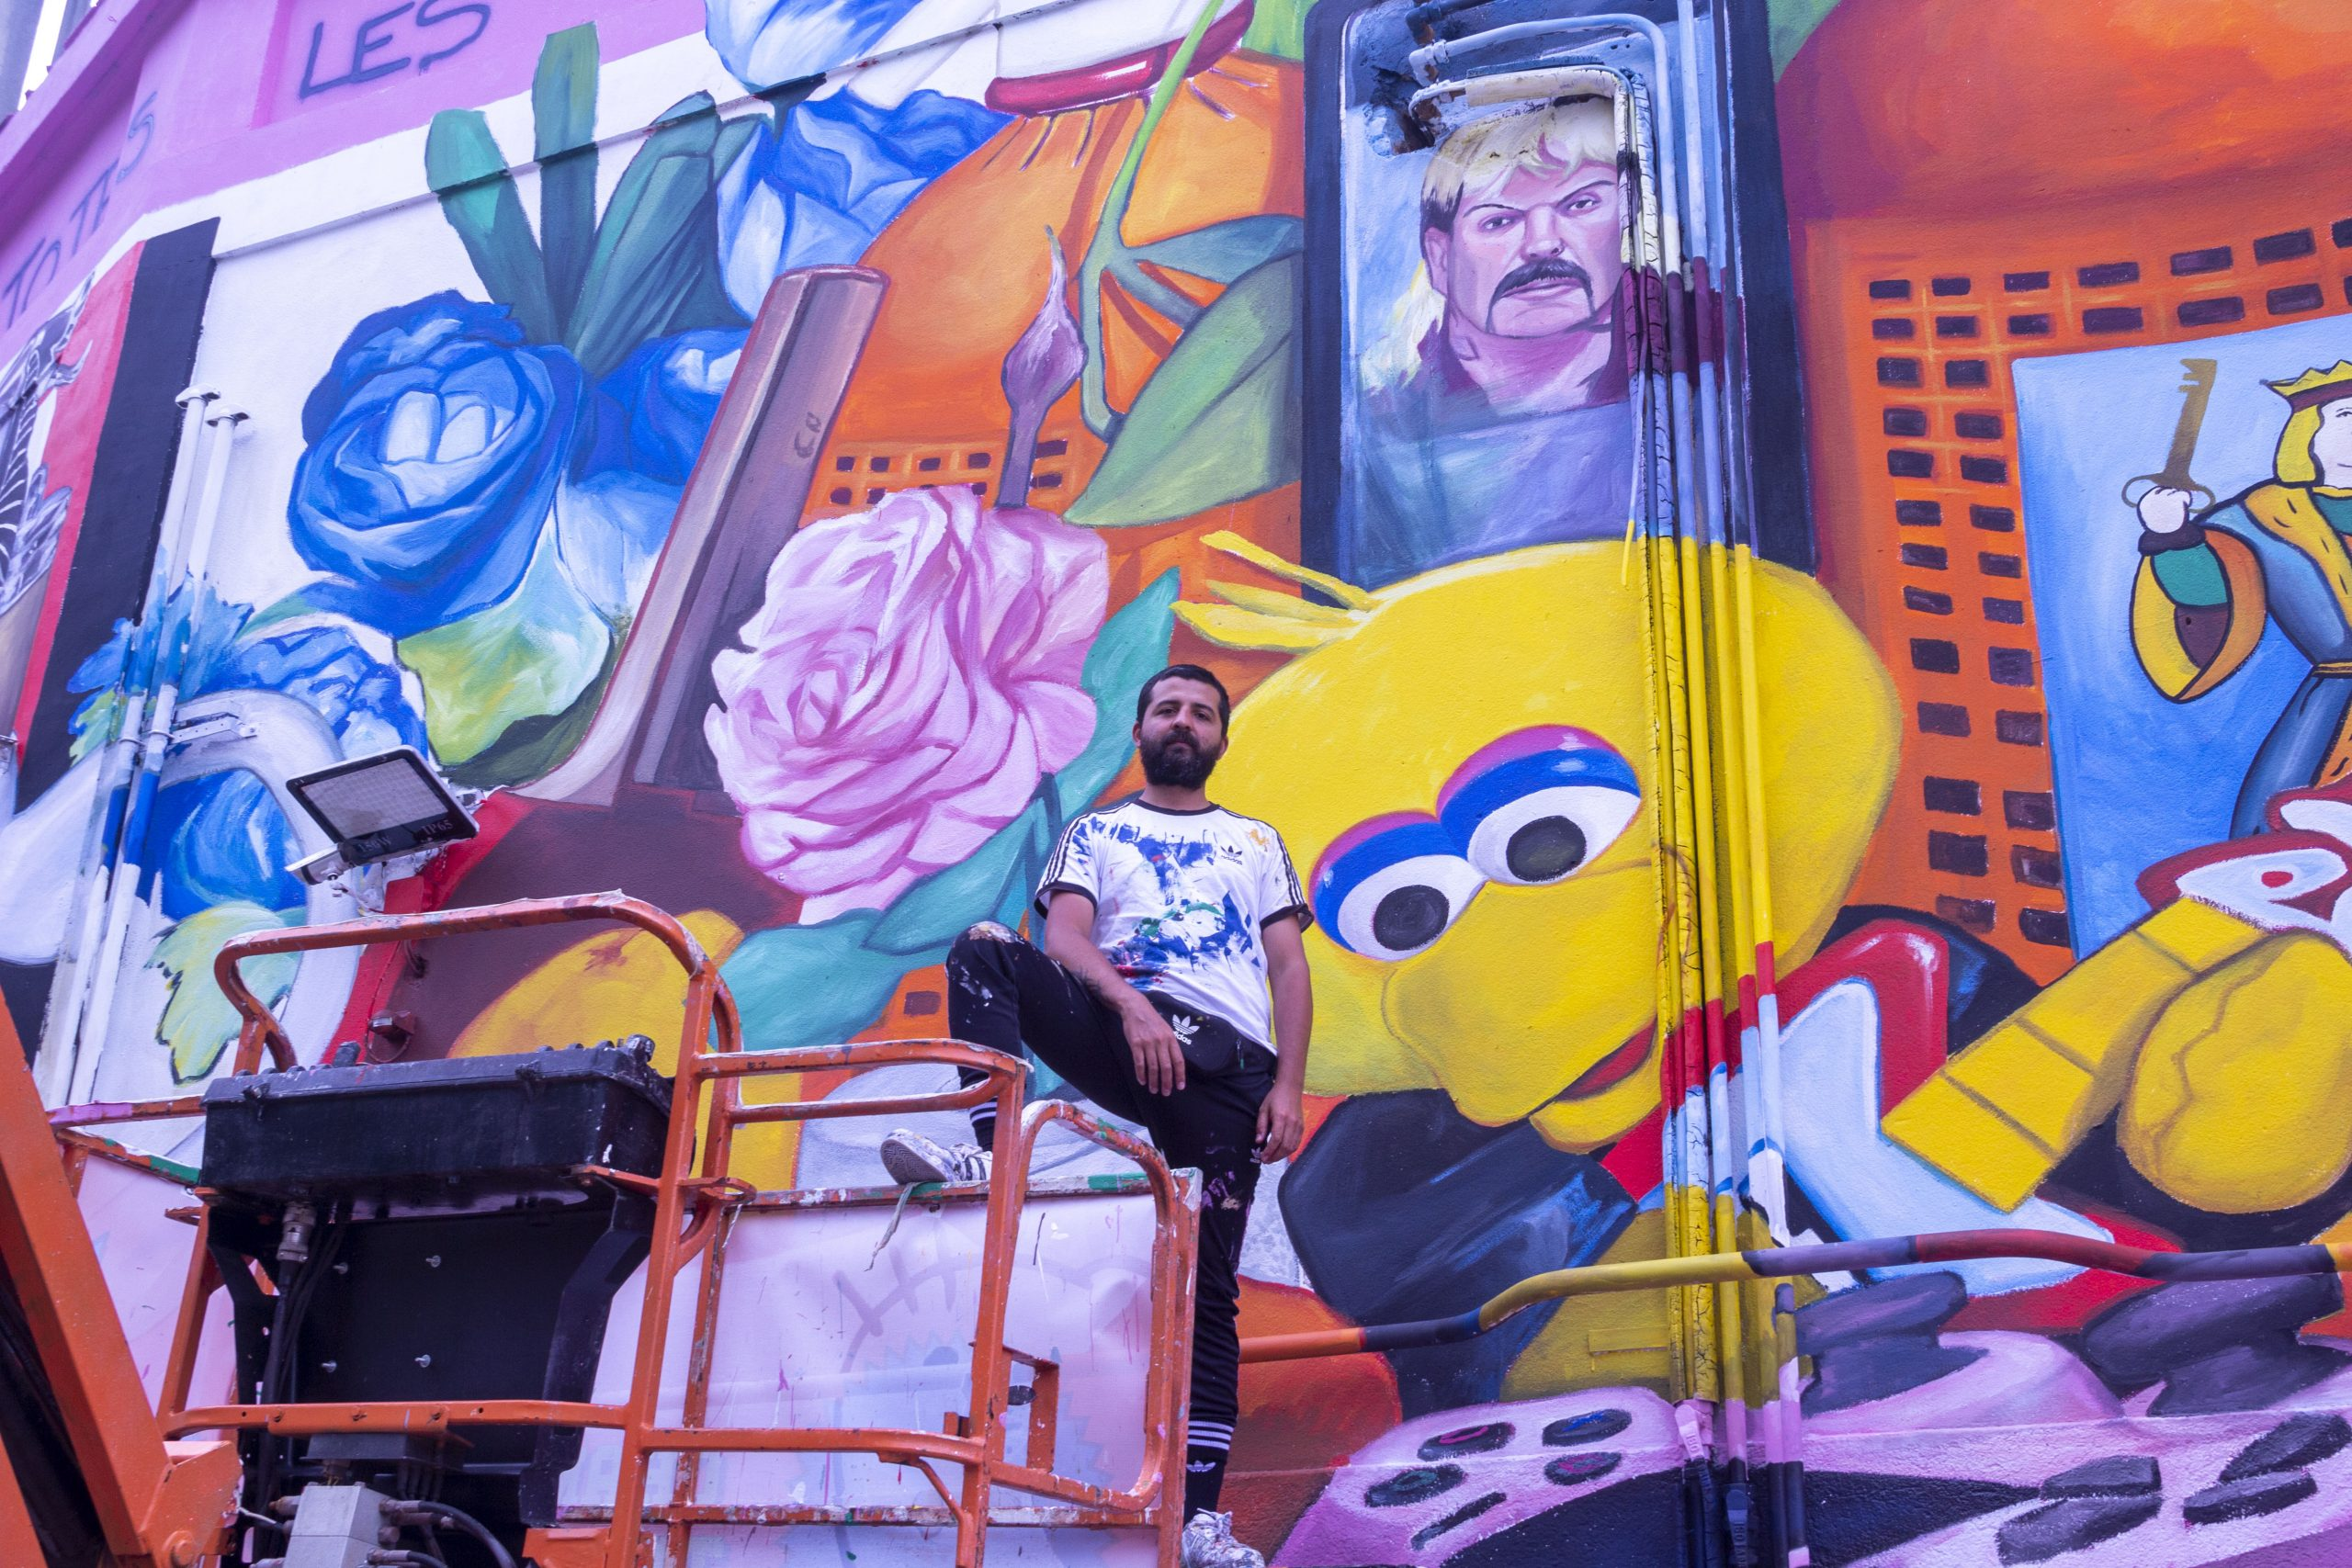 Nicolás Romero (Buenos Aires, 1985) began twenty years ago signing Ever and doing graffiti in the streets of his native Buenos Aires